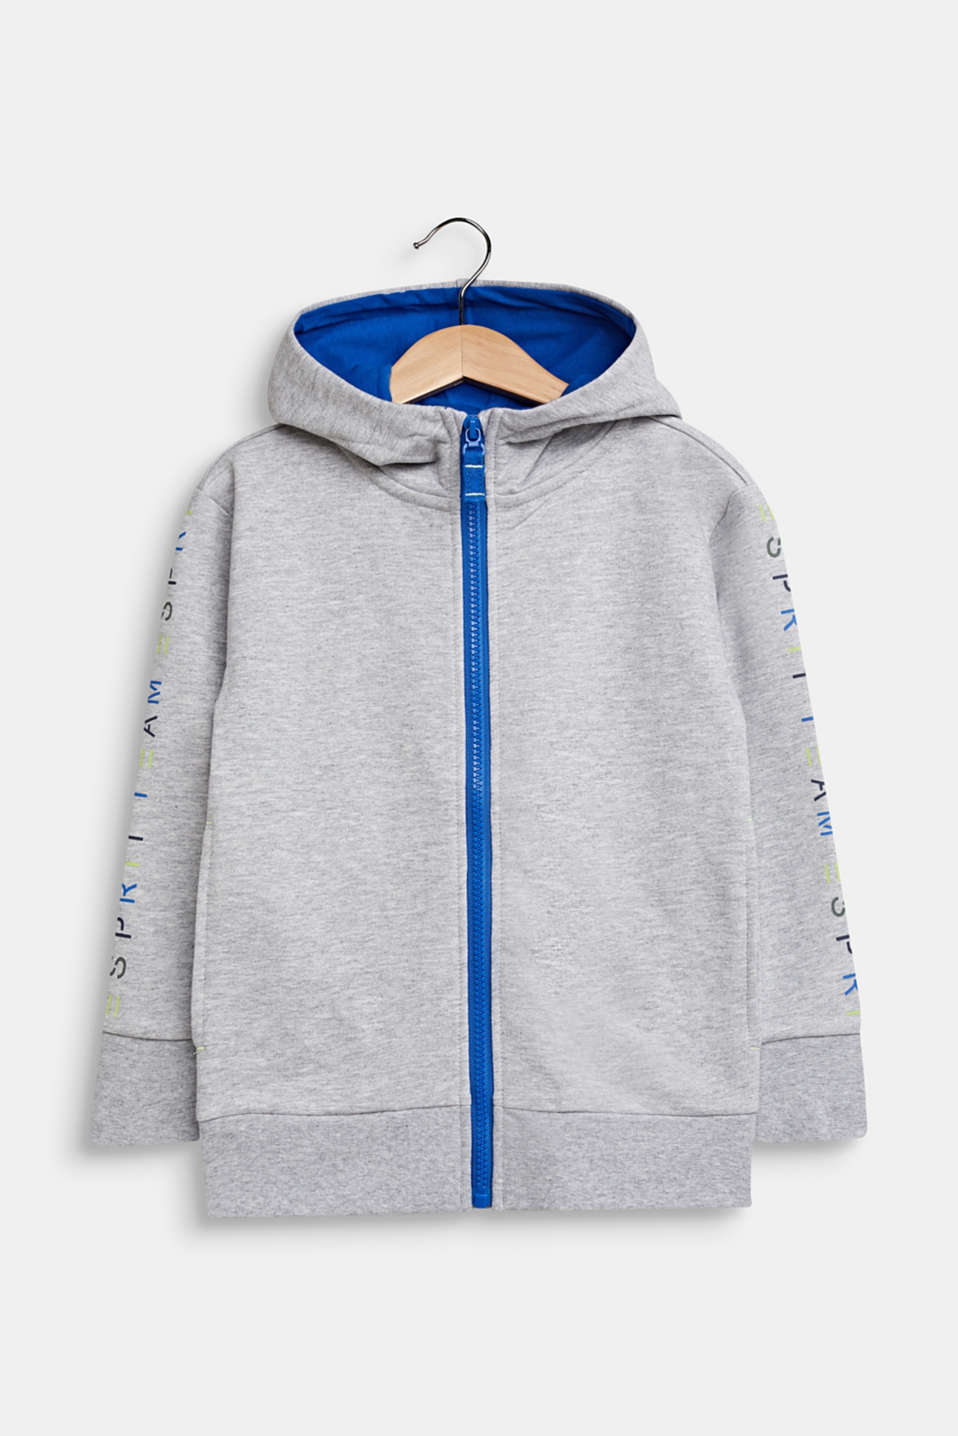 Sweatshirt cardigan with hood, 100% cotton, HEATHER SILVER, detail image number 0